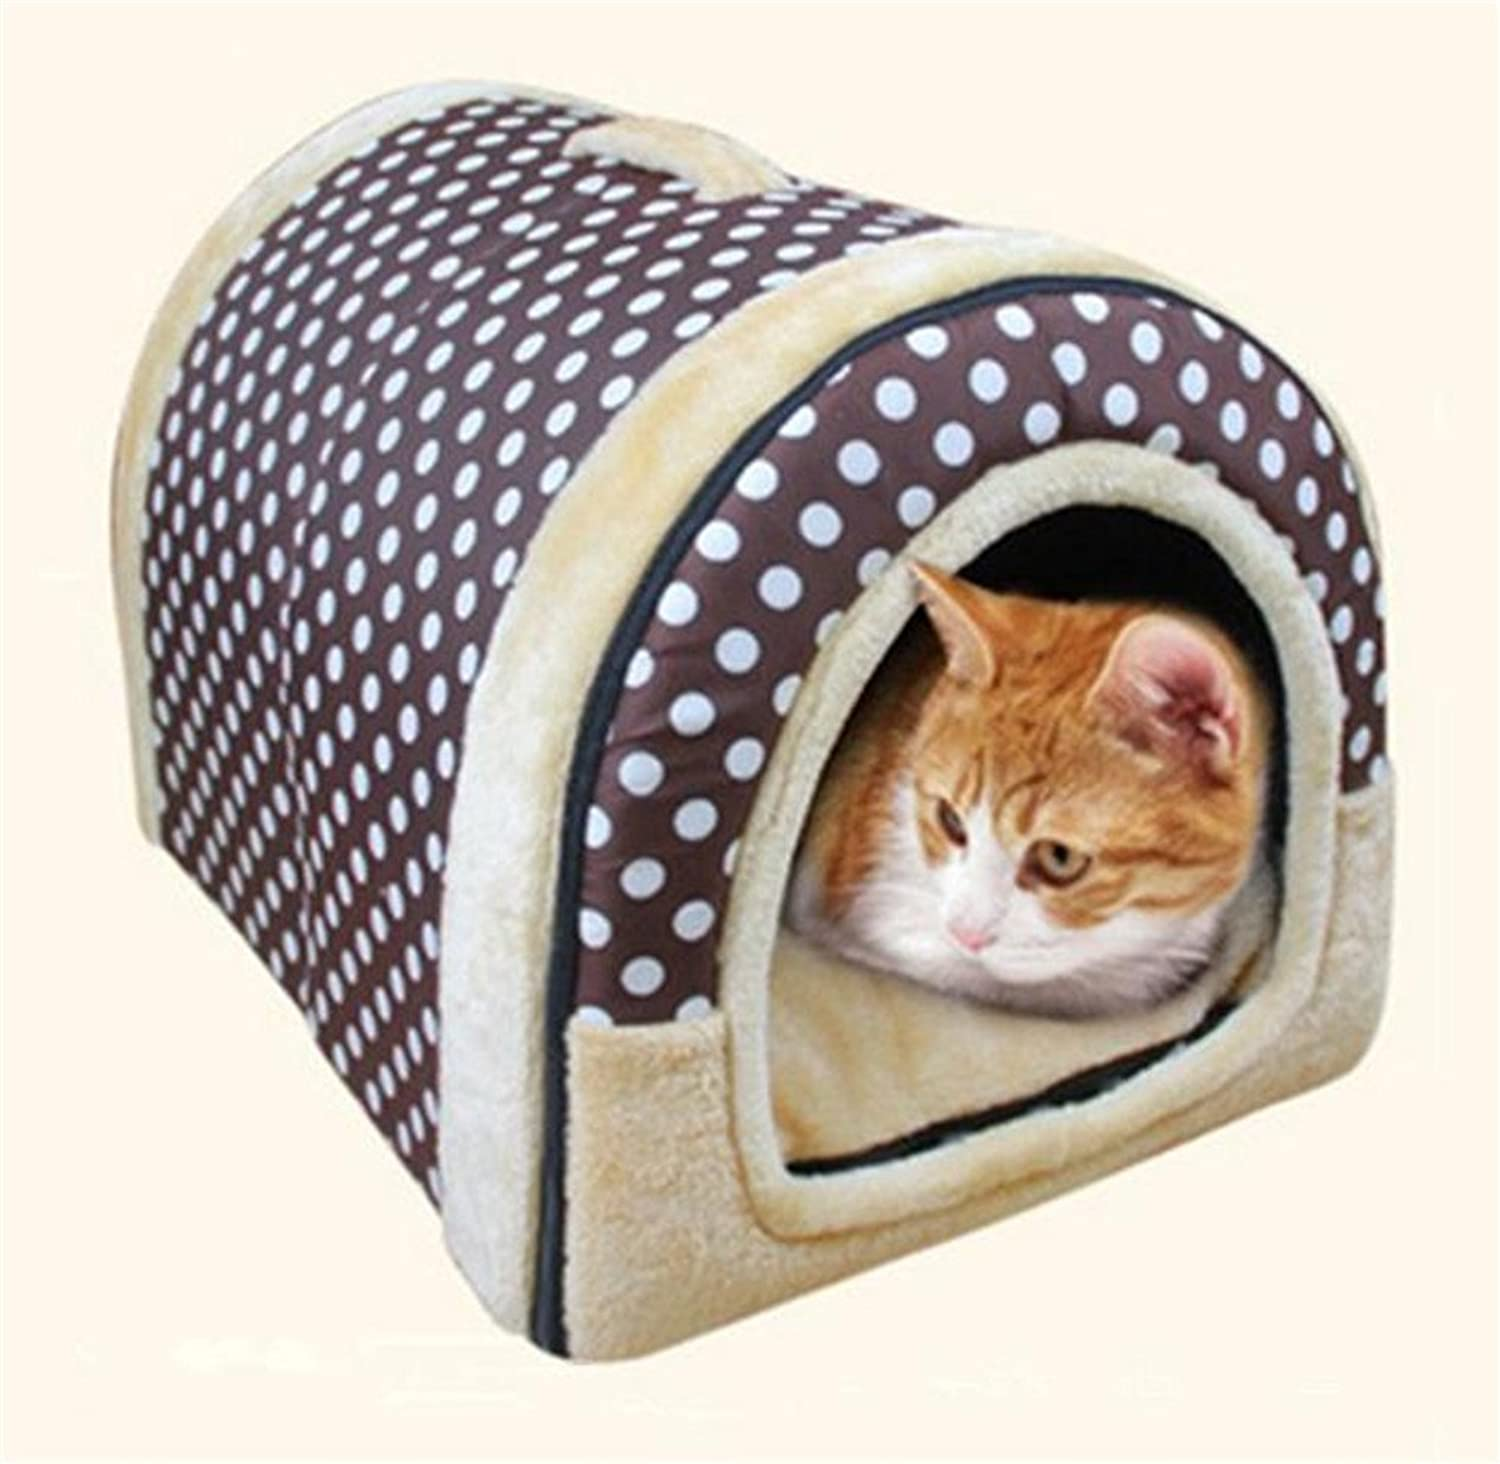 Cozy 2in1 Pet house and Sofa NonSlip Dog Cat Igloo Beds (M(45x35x32cm), Coffee Dot)